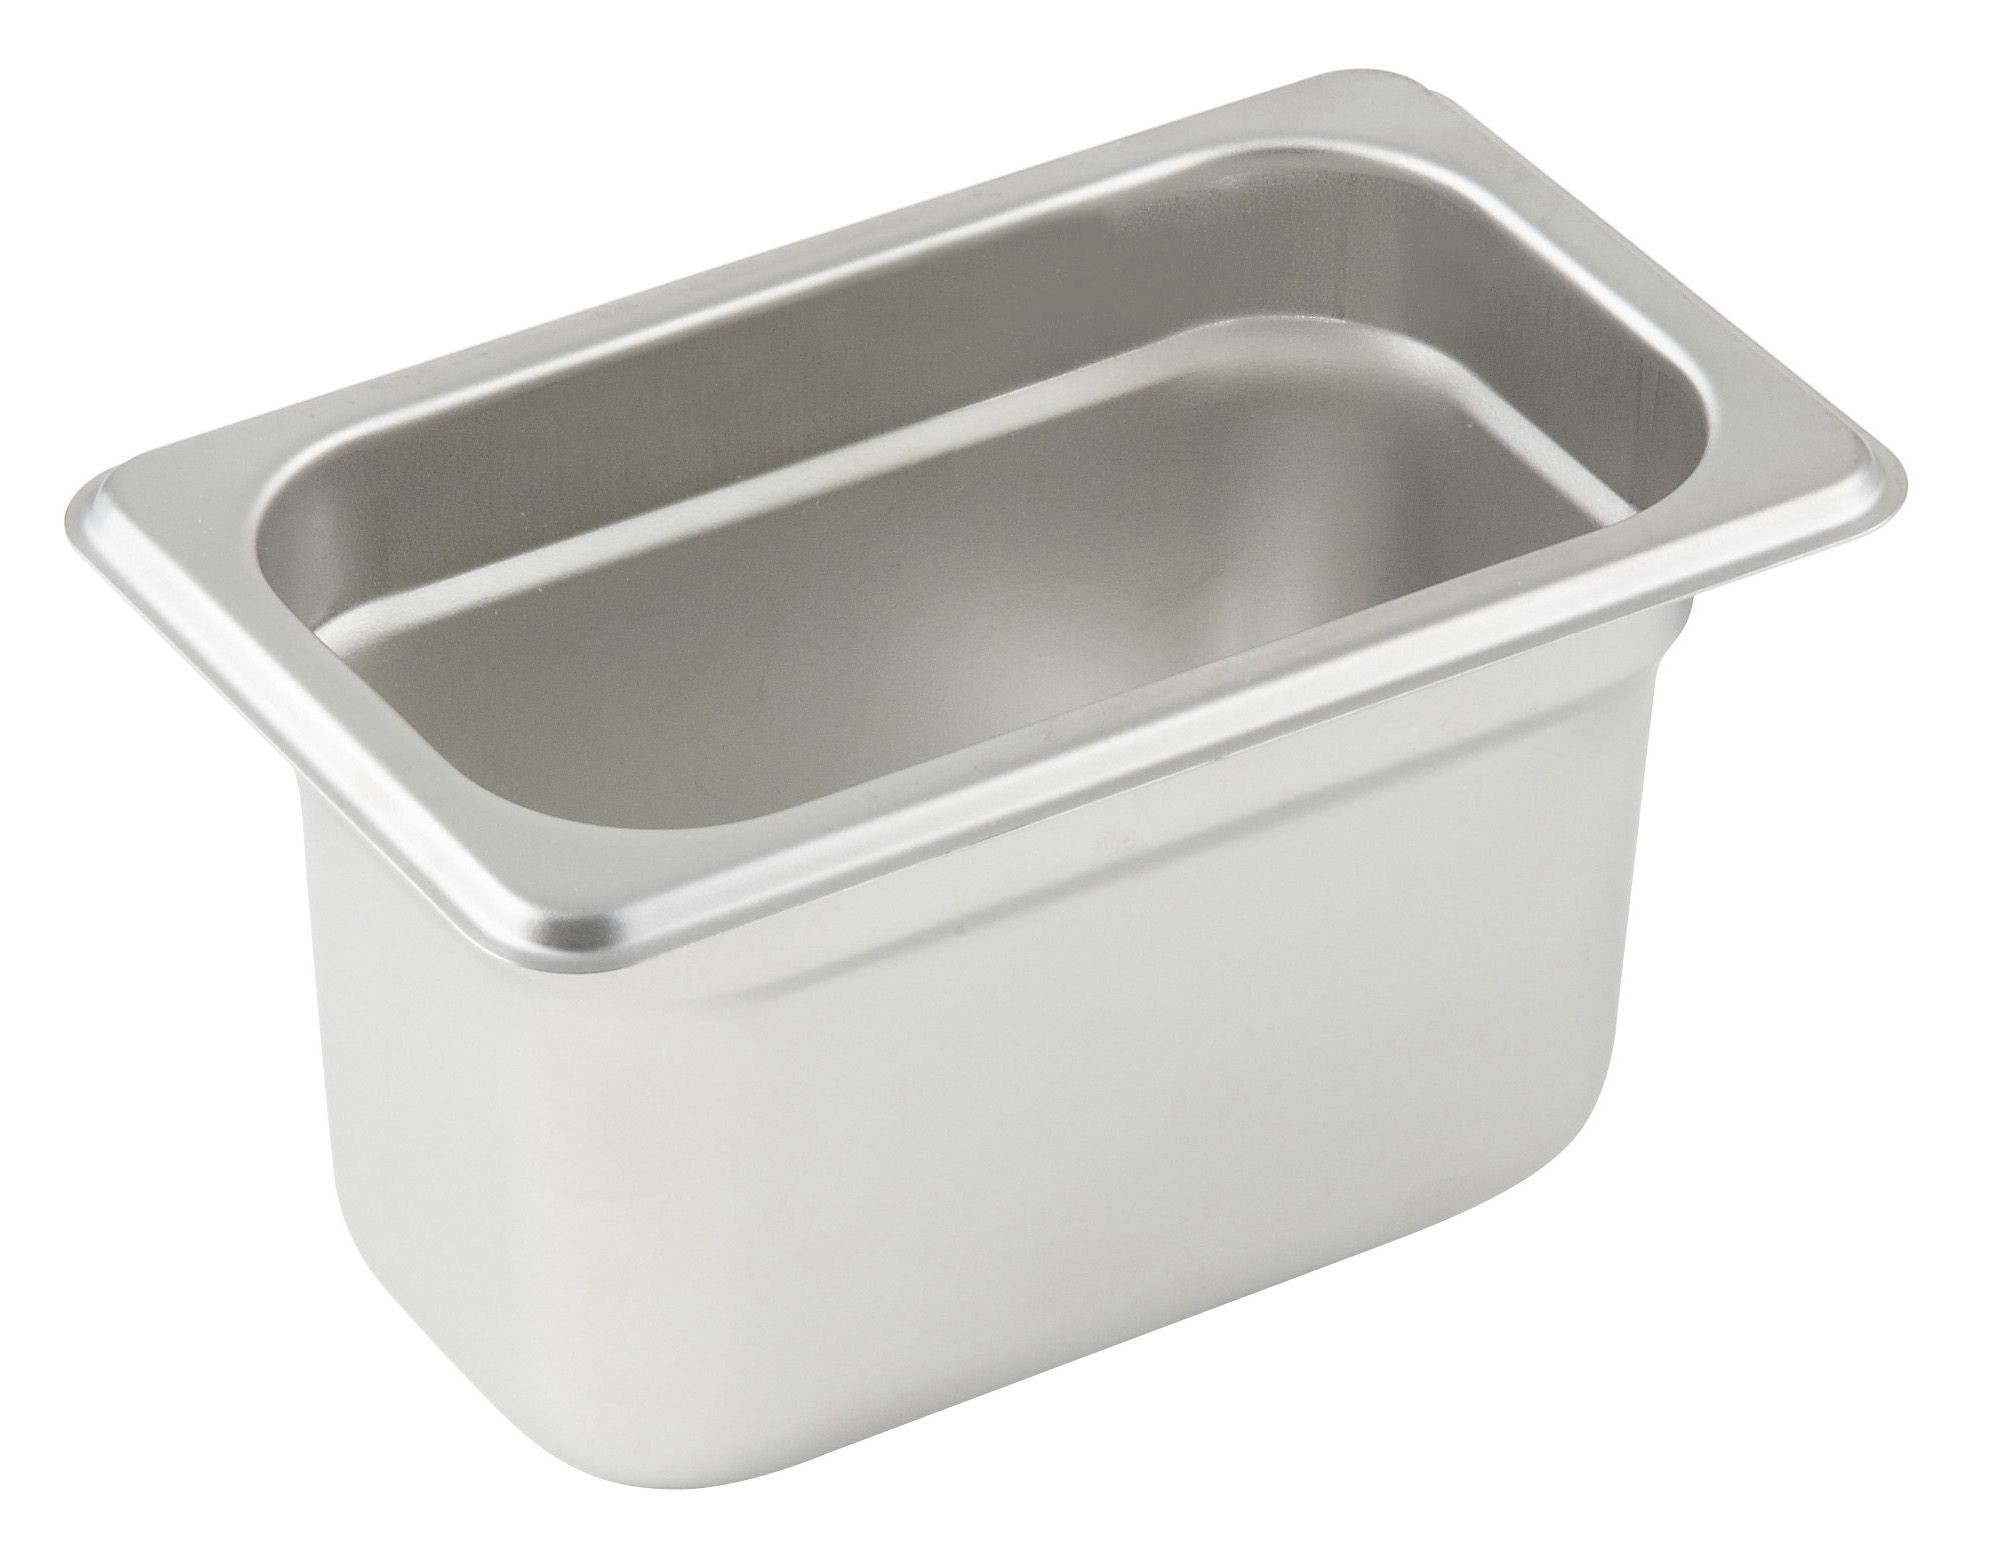 "Winco SPJL-904 1/9 Size Anti-Jam 25 Gauge Steam Table Pan 4"" Deep"